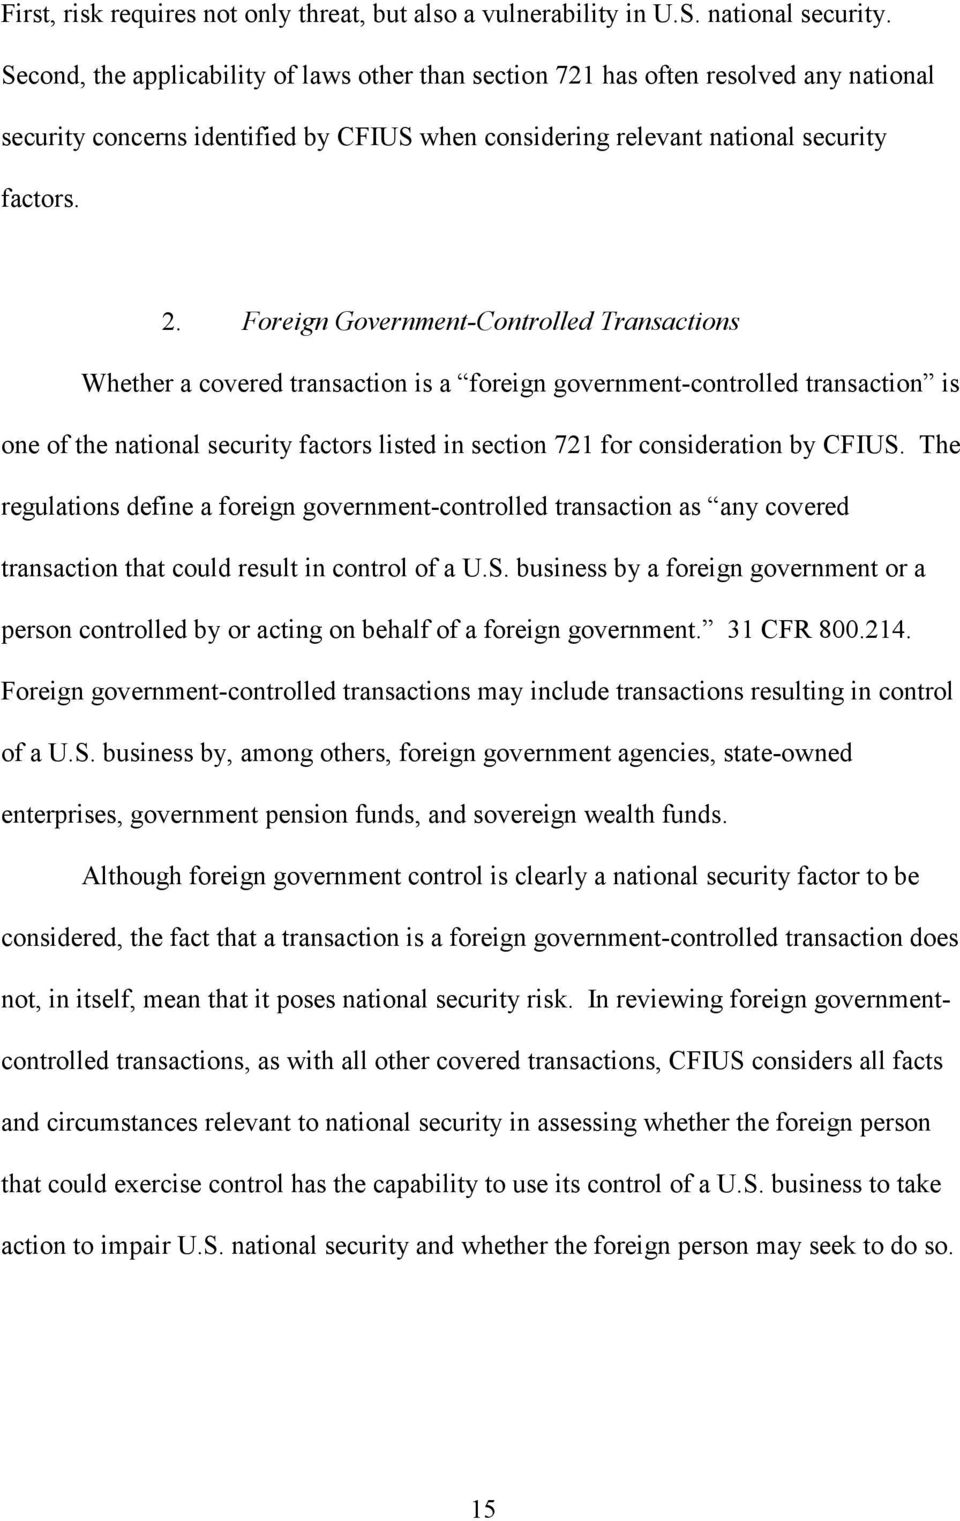 Foreign Government-Controlled Transactions Whether a covered transaction is a foreign government-controlled transaction is one of the national security factors listed in section 721 for consideration